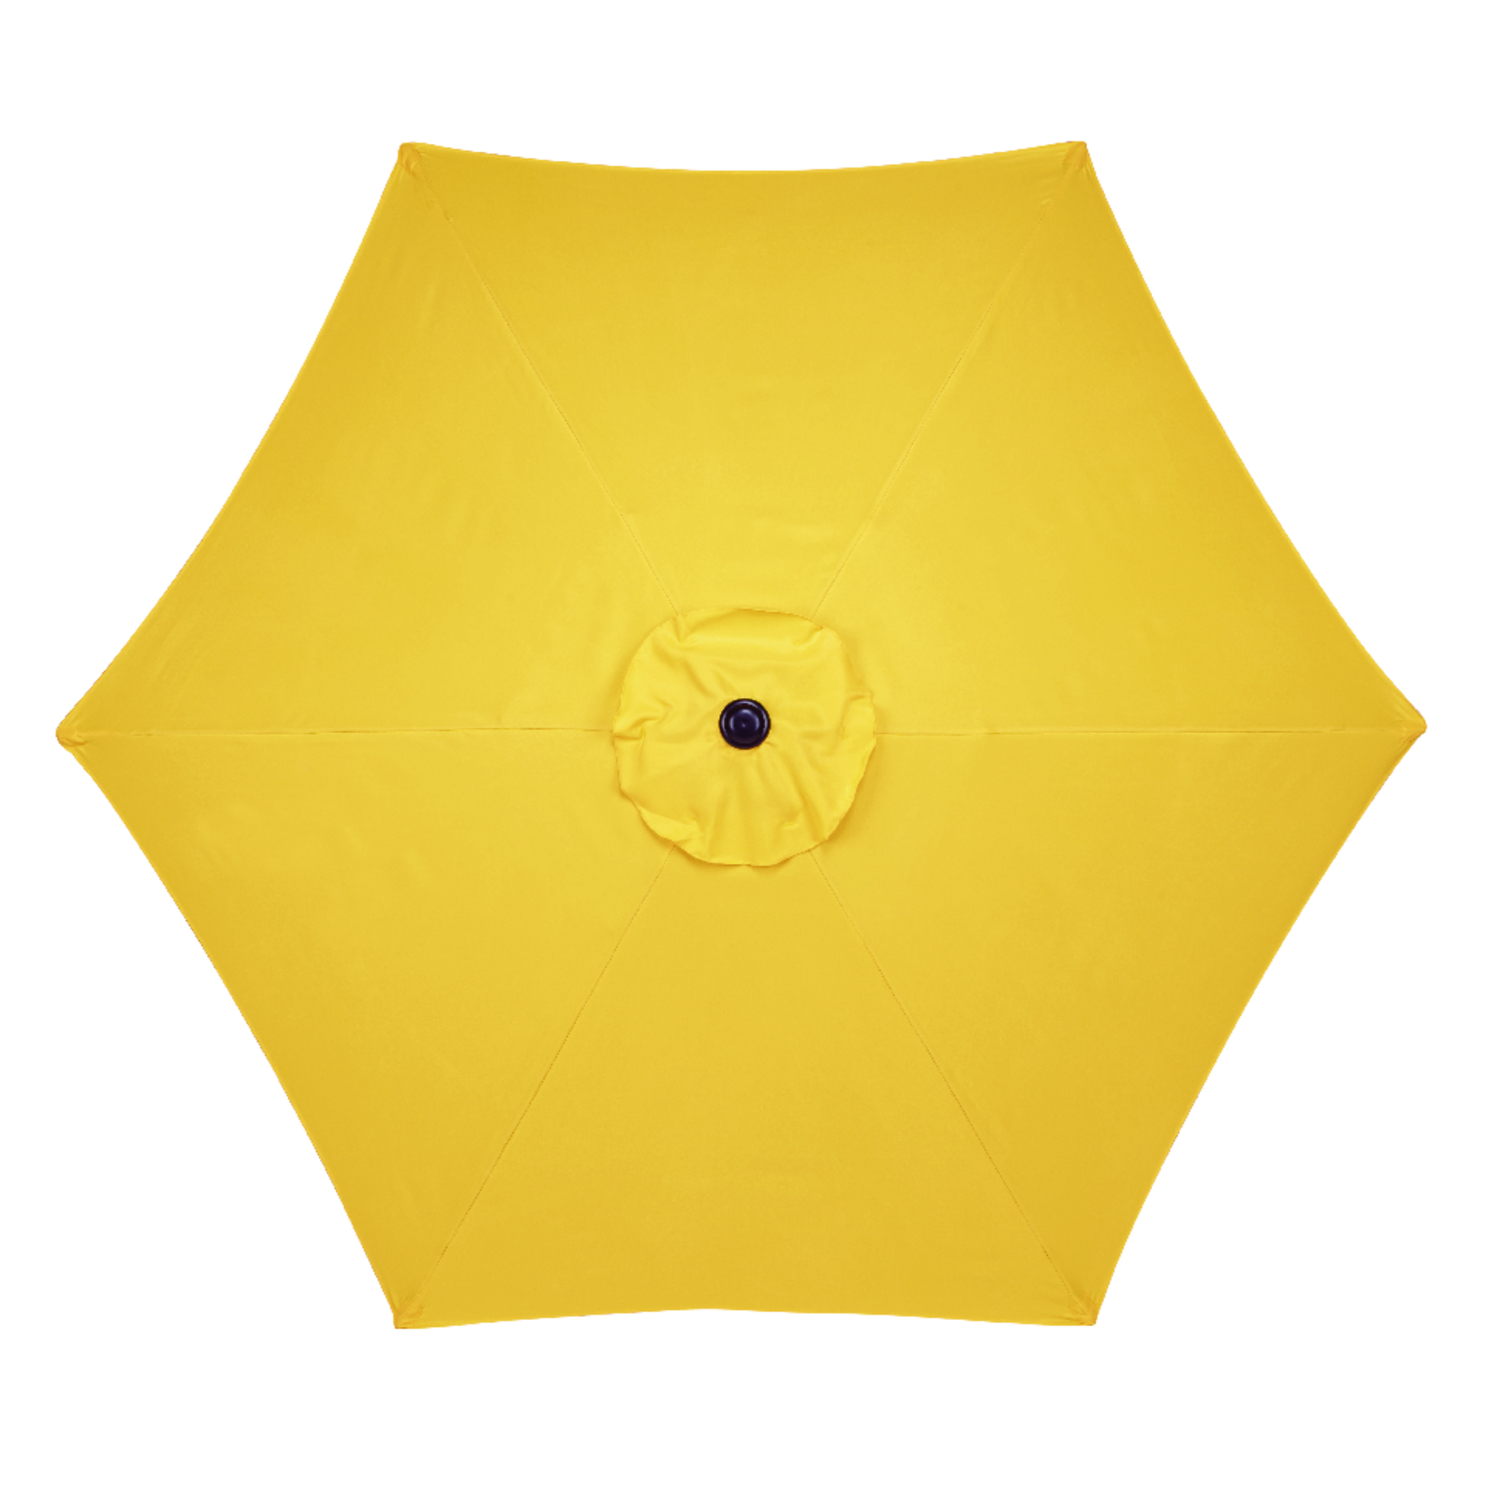 Tiltable Yellow Patio Umbrella